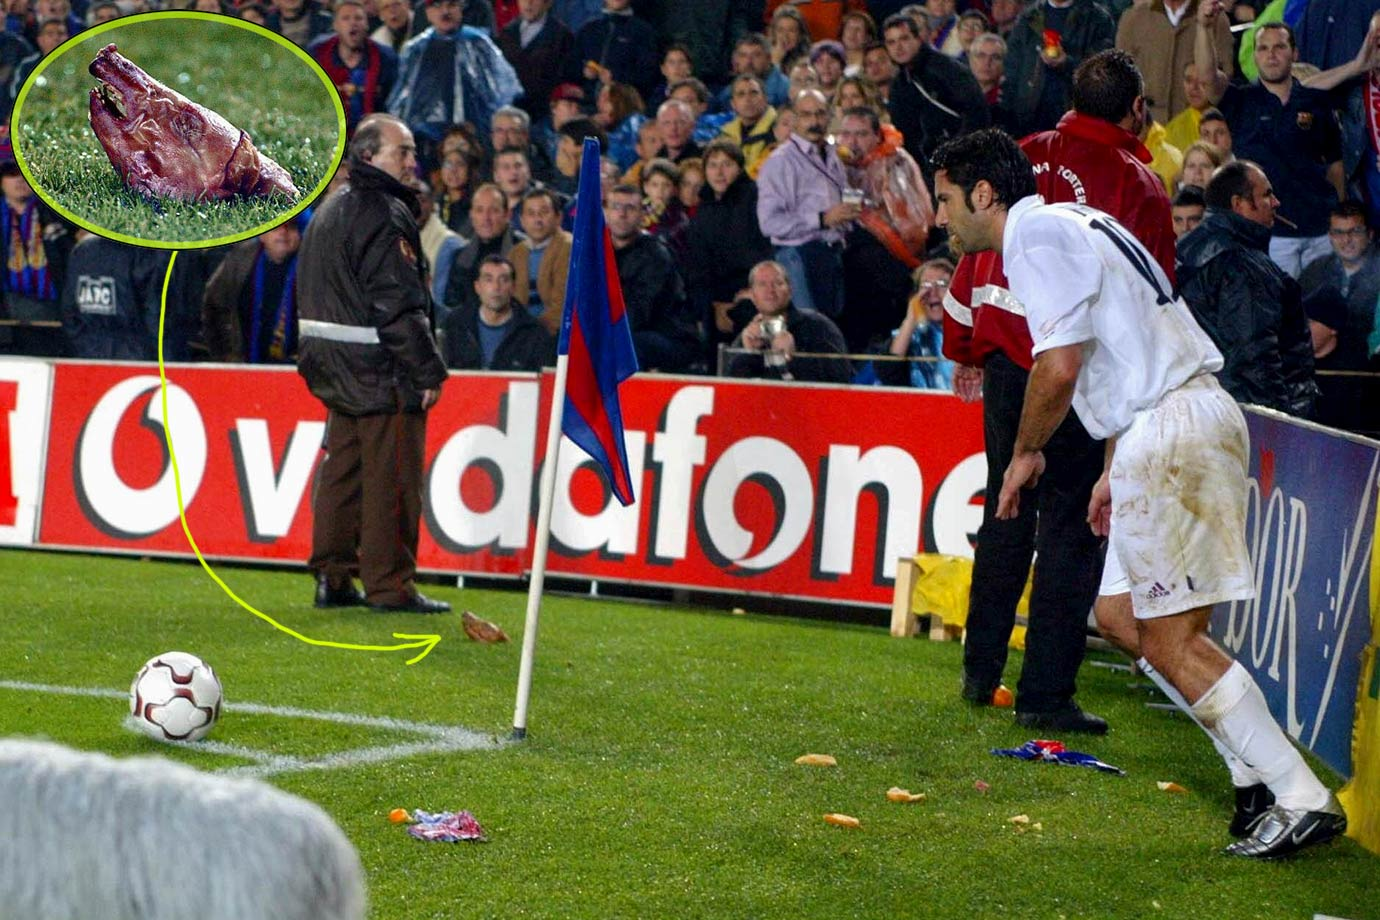 Barcelona fans throw a legit pig's head onto the field aimed at Real Madrid's Luis Figo in a 0-0 draw. Figo had left Barcelona for Real Madrid in 2000, sparking the animosity.